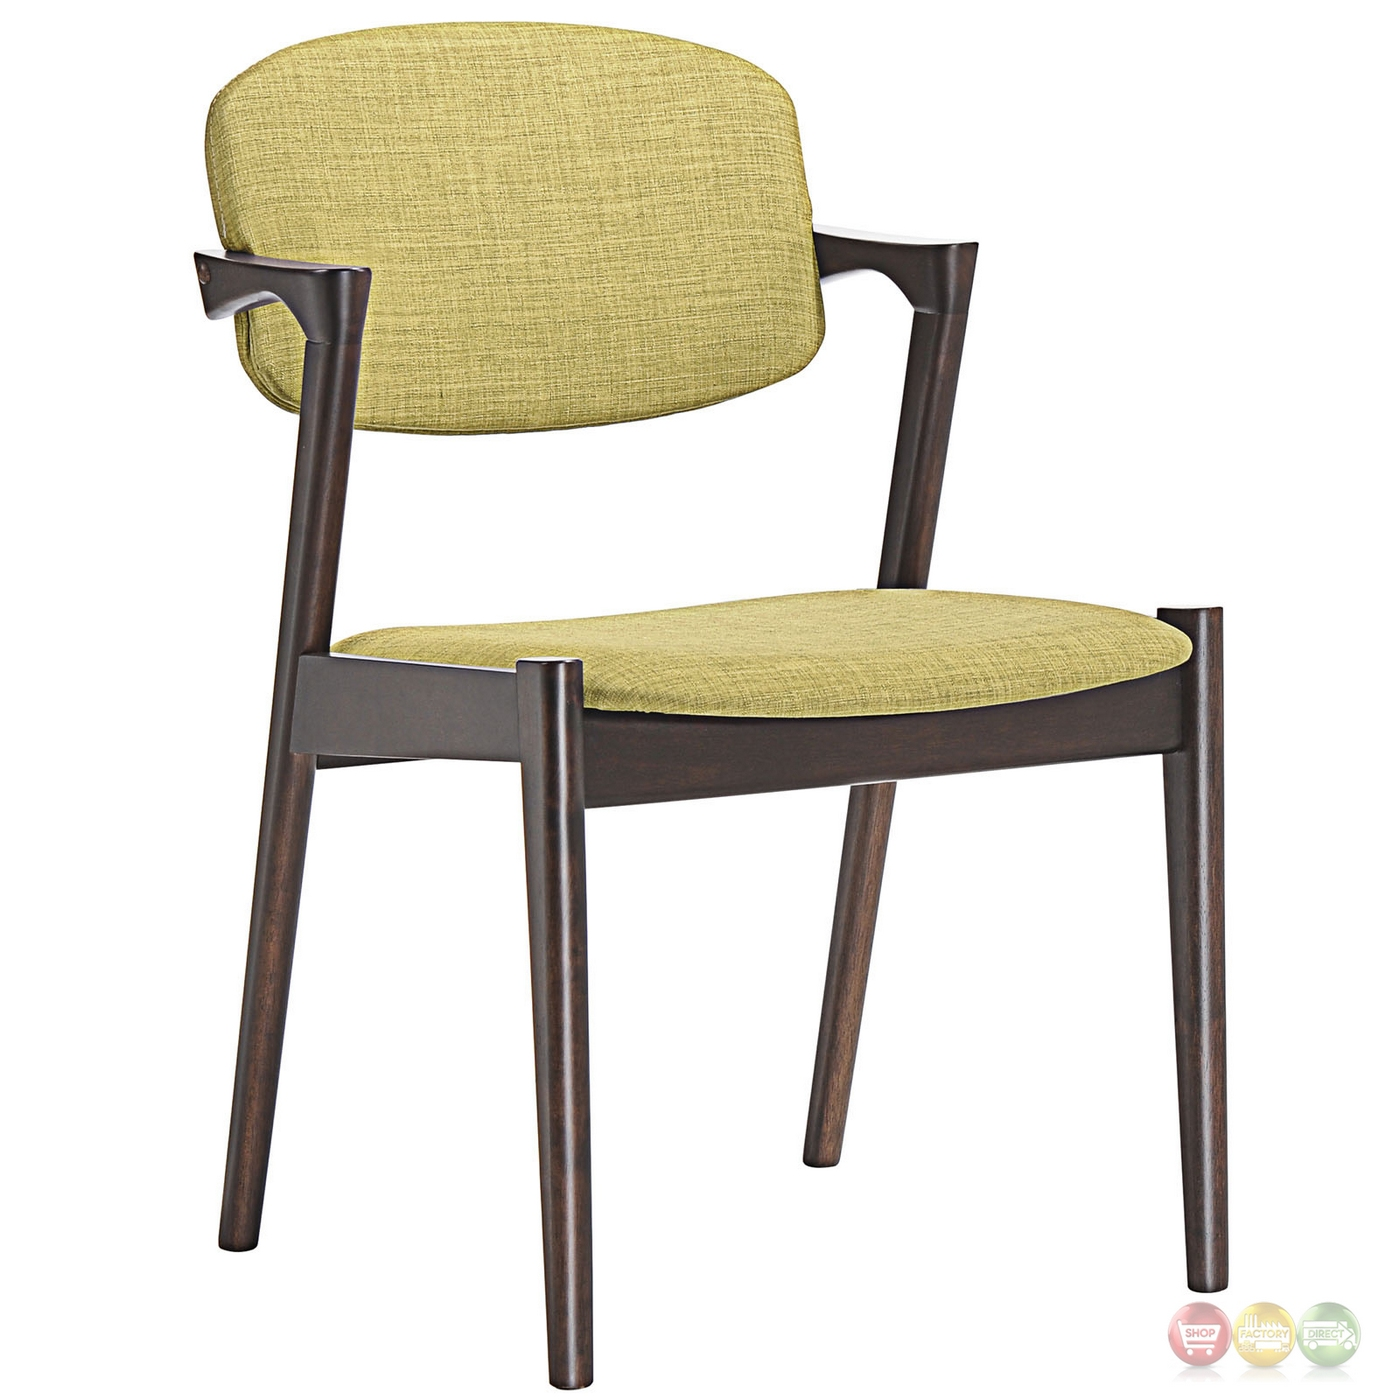 Spunk vintage modern upholstered dining armchair w wood for Armchair builder